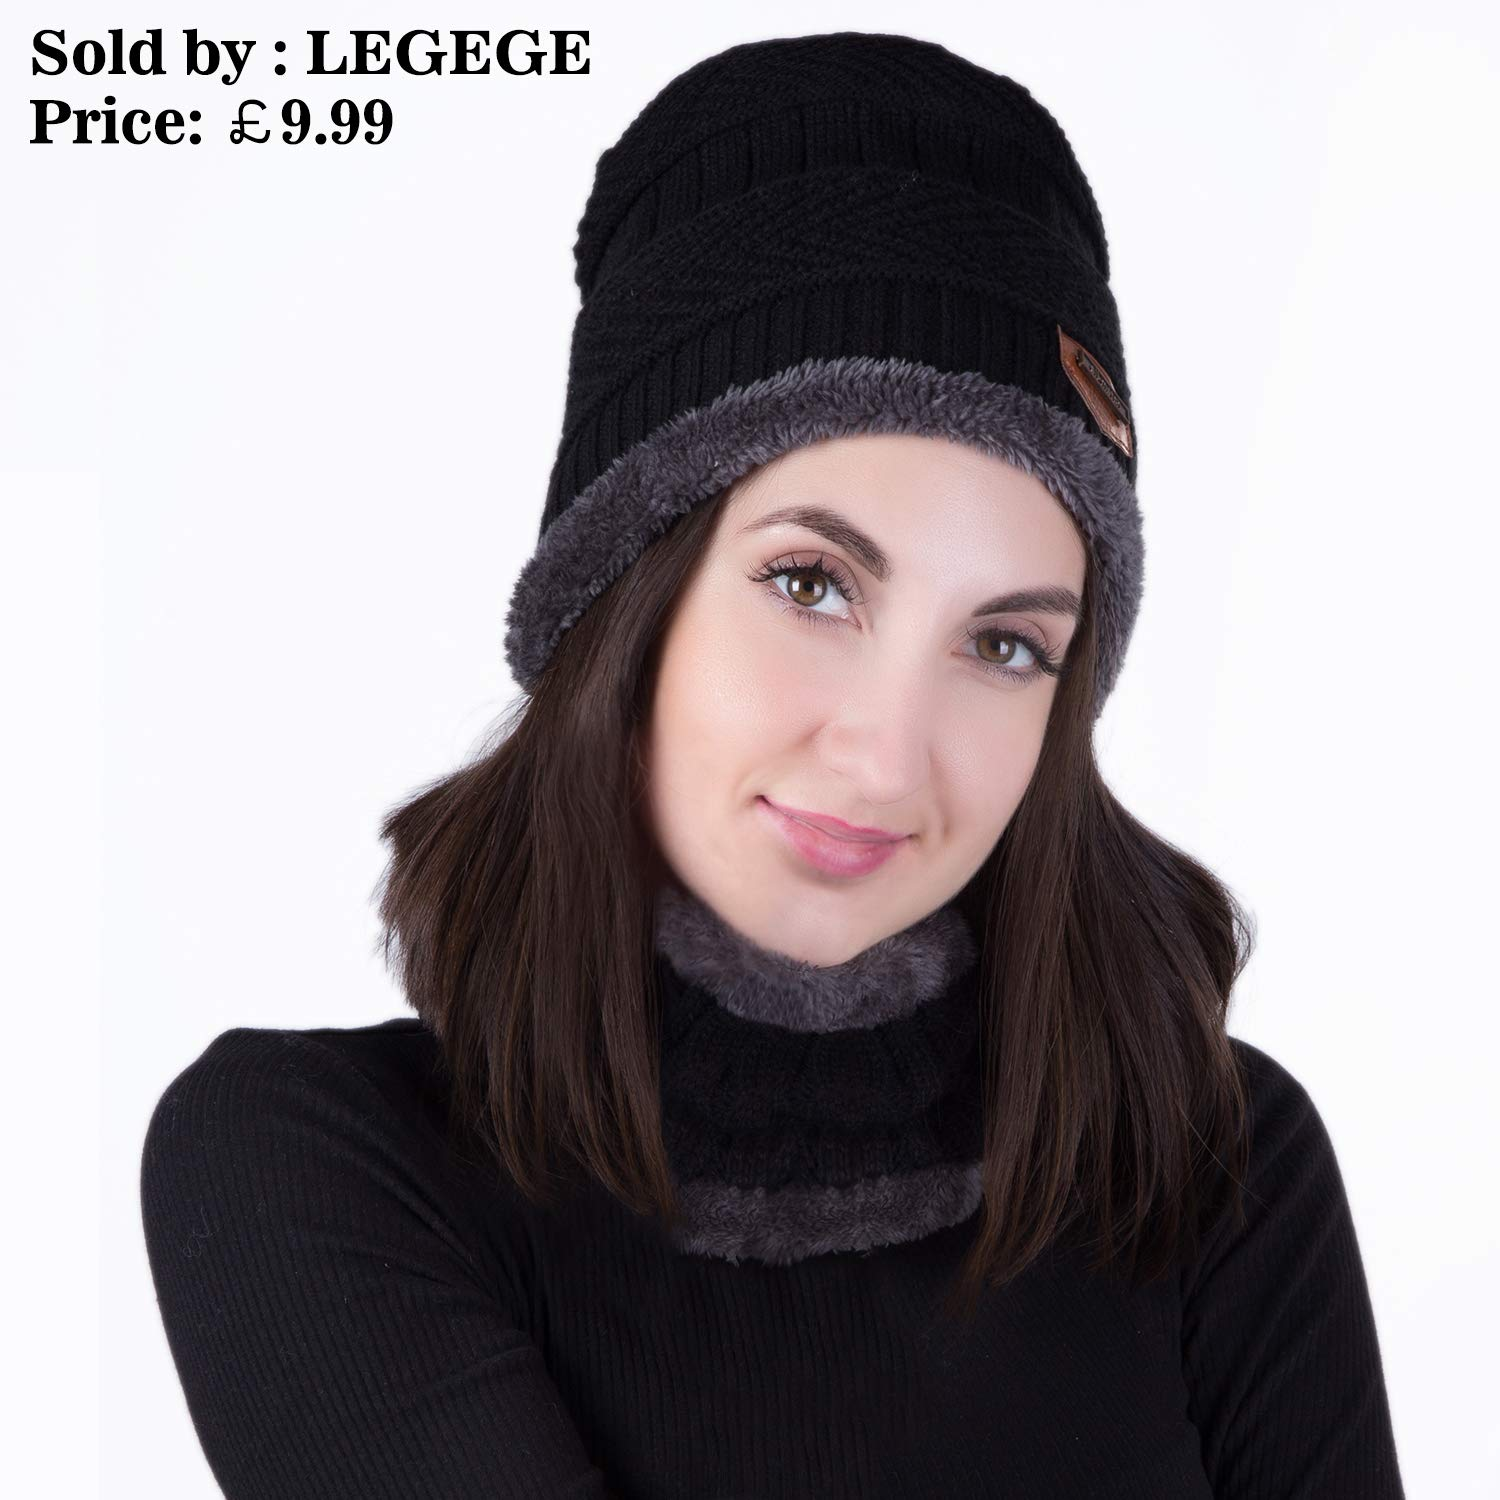 209470bbb2a Habikox Unisex Winter Beanie Hat Scarf Set Warm Knitted Hat and Circle  Scarf Set Outdoors Scarf Beanie Skiing Hat for Men and Women Choose Seller  Name ...